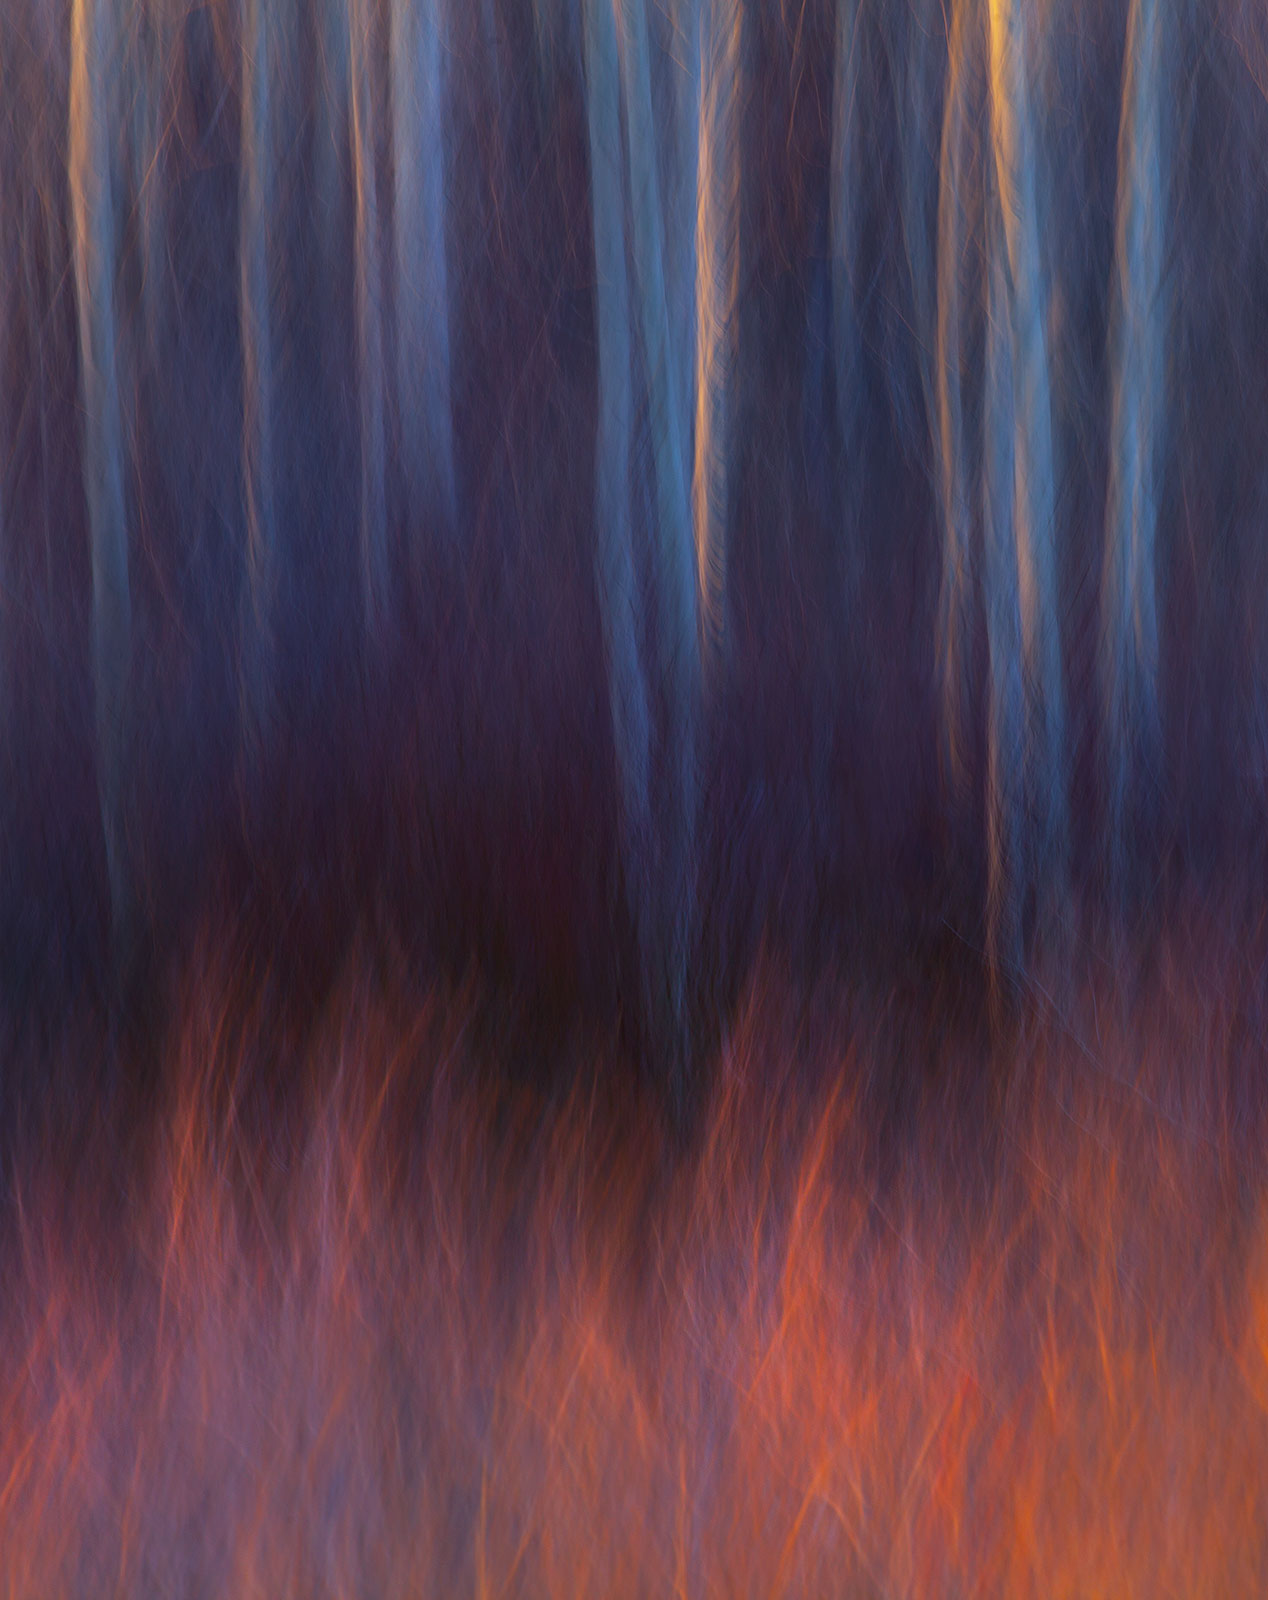 Camera motion during the exposure creates an abstract rendition of Red Willows and Aspen catching the light of sunset on Utah...